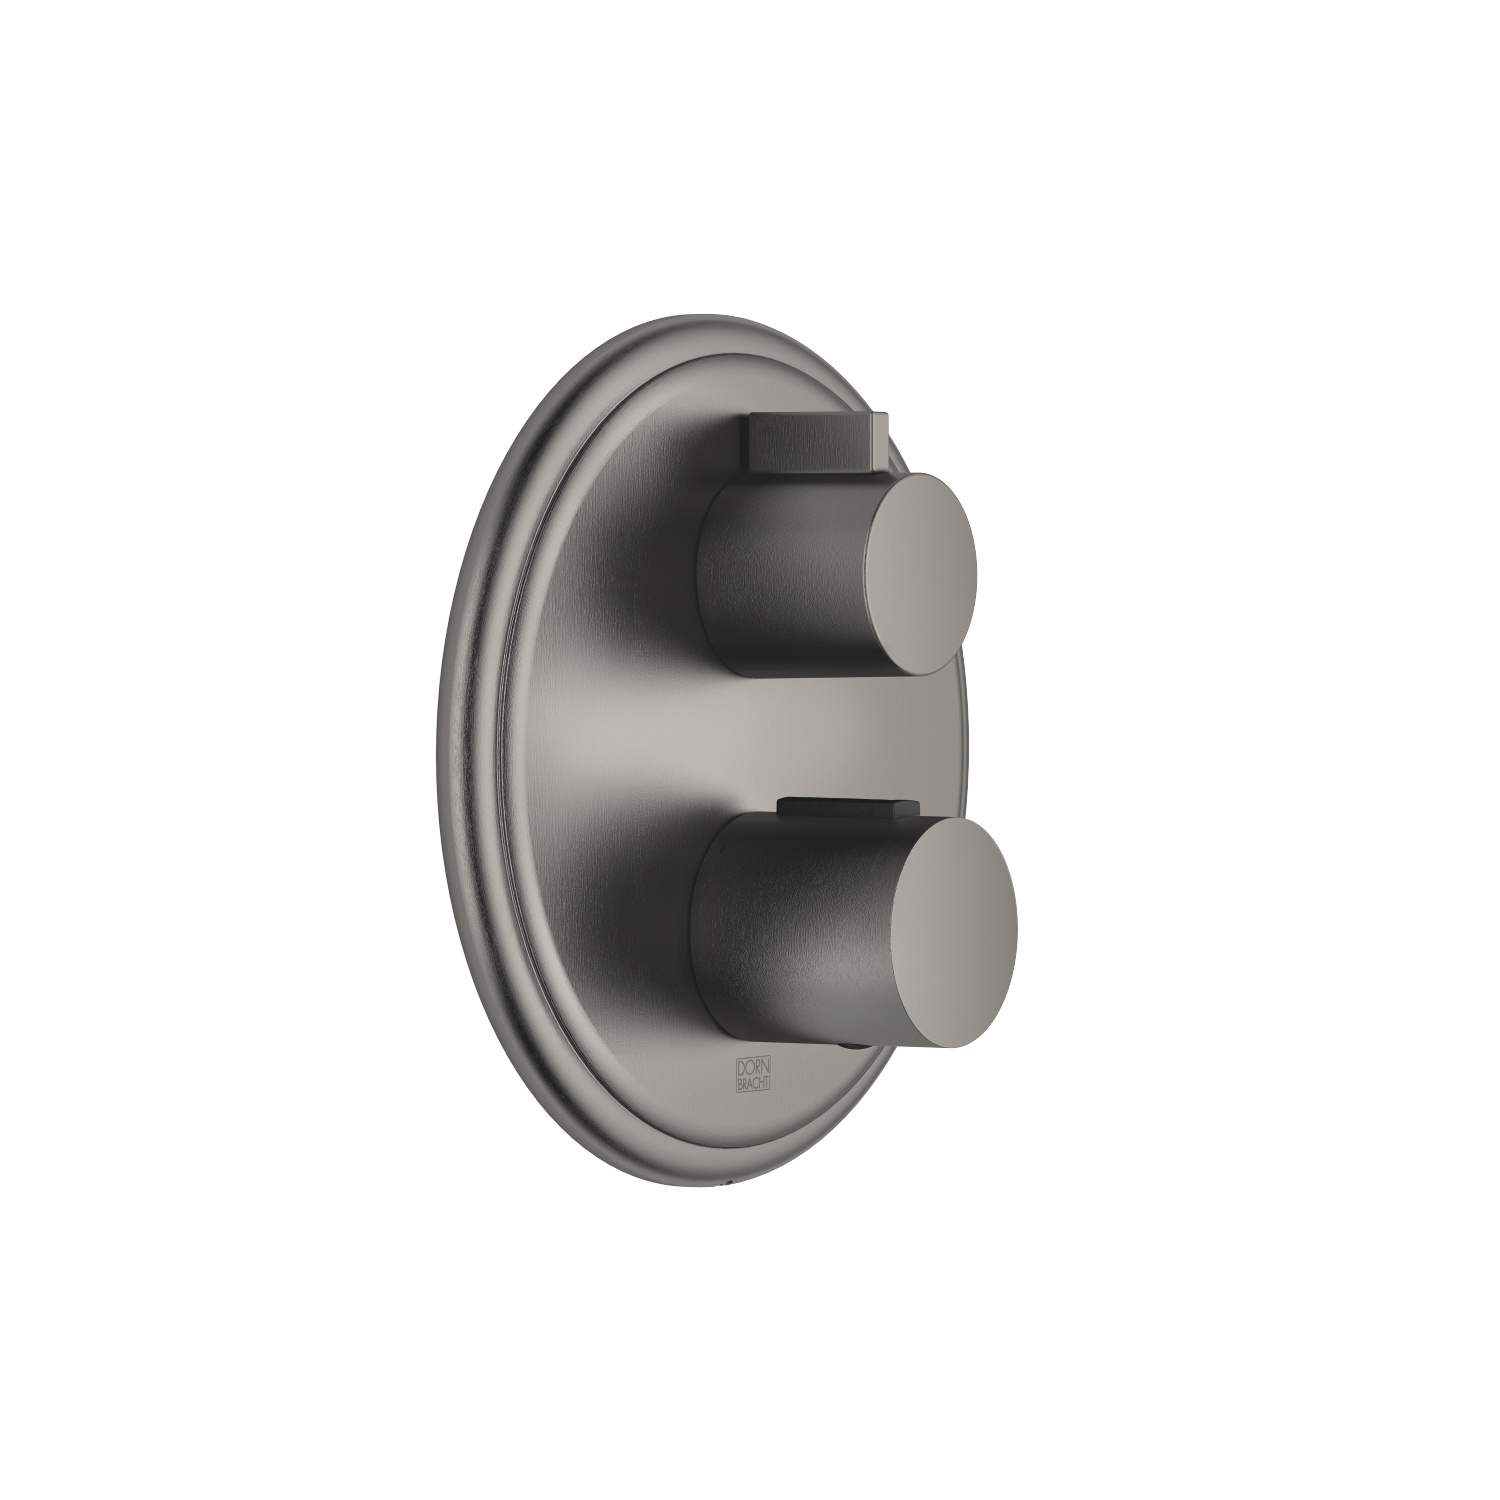 Concealed thermostat with one-way volume control - Dark Platinum matte - 36 425 977-99 0010